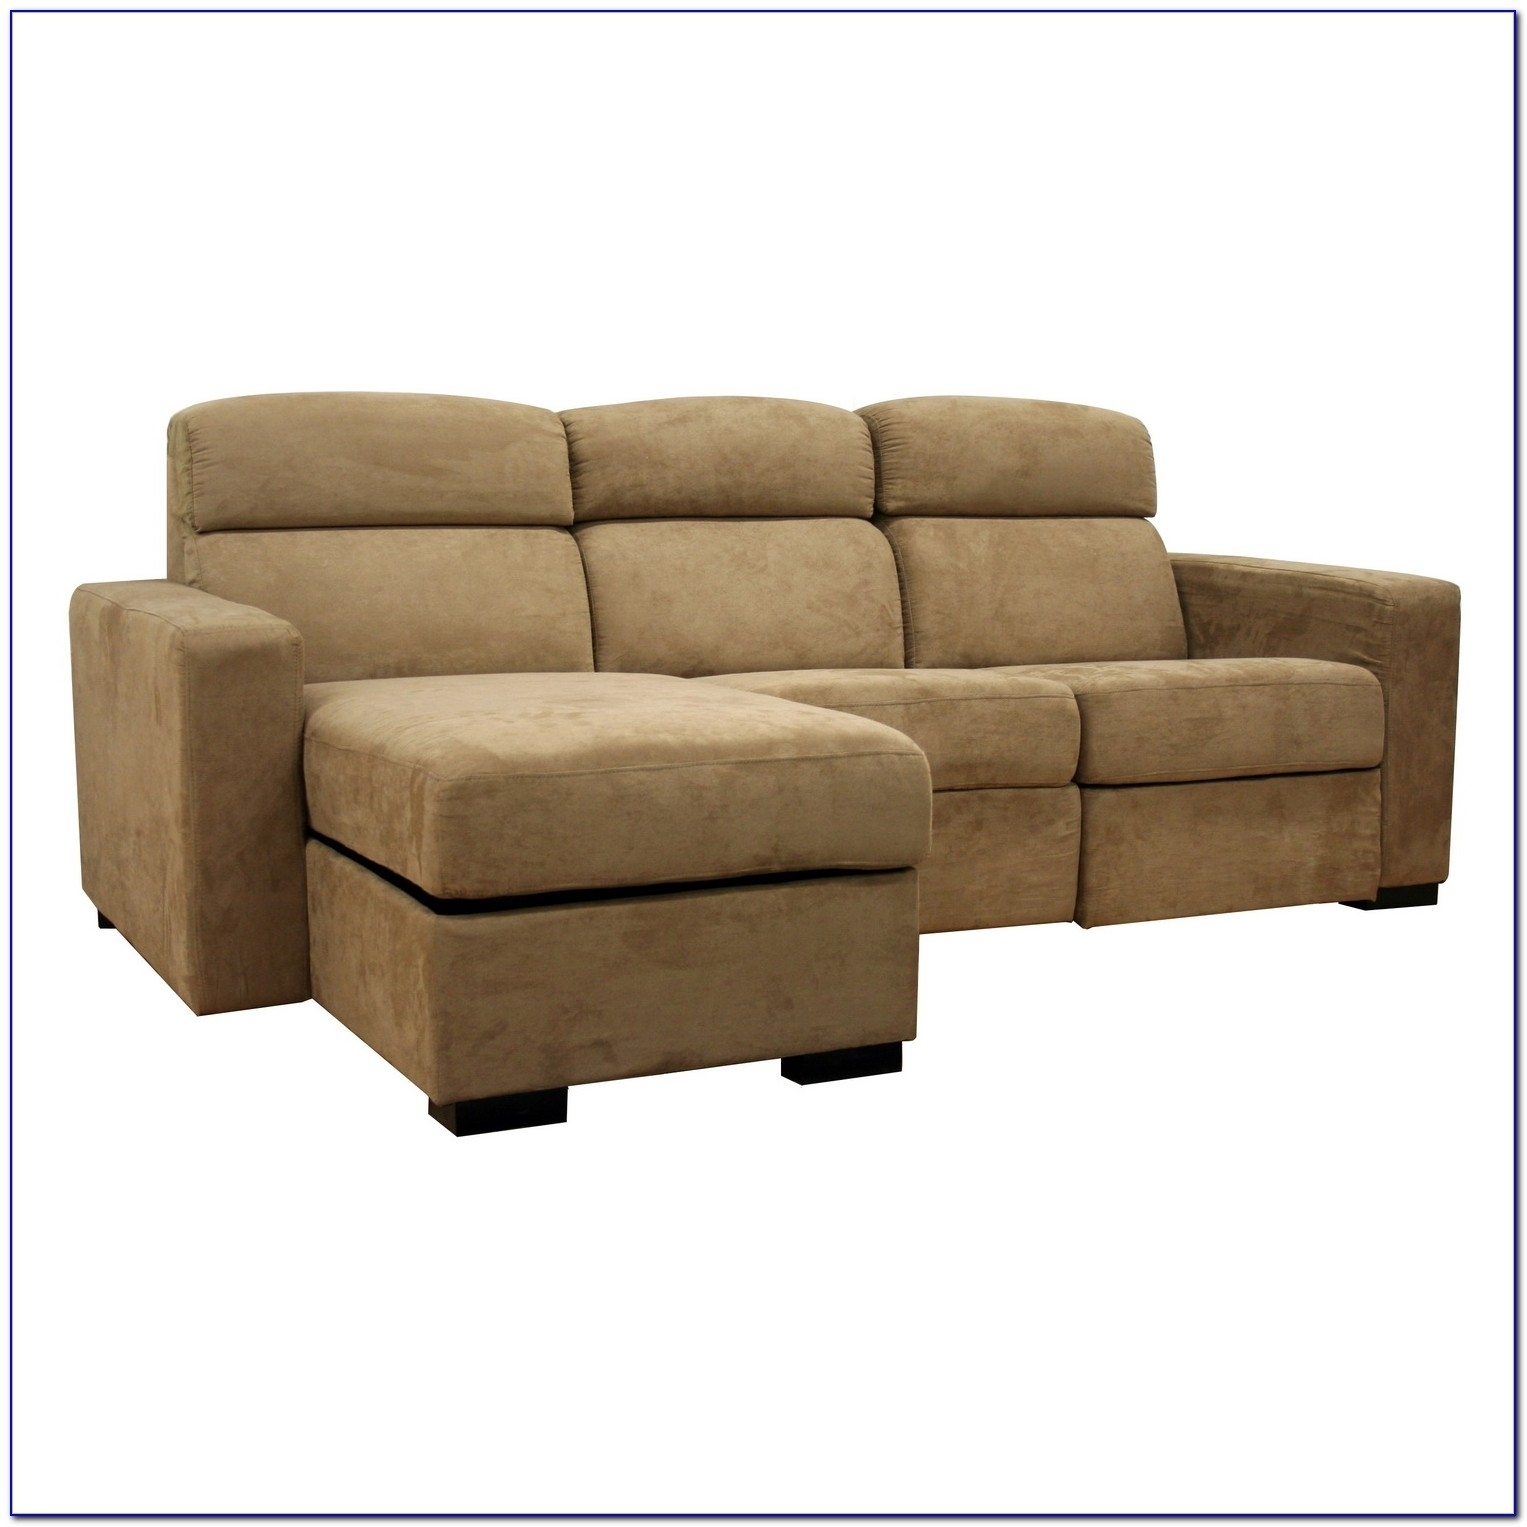 Bowen Sectional Sleeper Sofa With Left Side Chaise Lounge | Http inside Salt Lake City Sectional Sofas (Image 3 of 10)